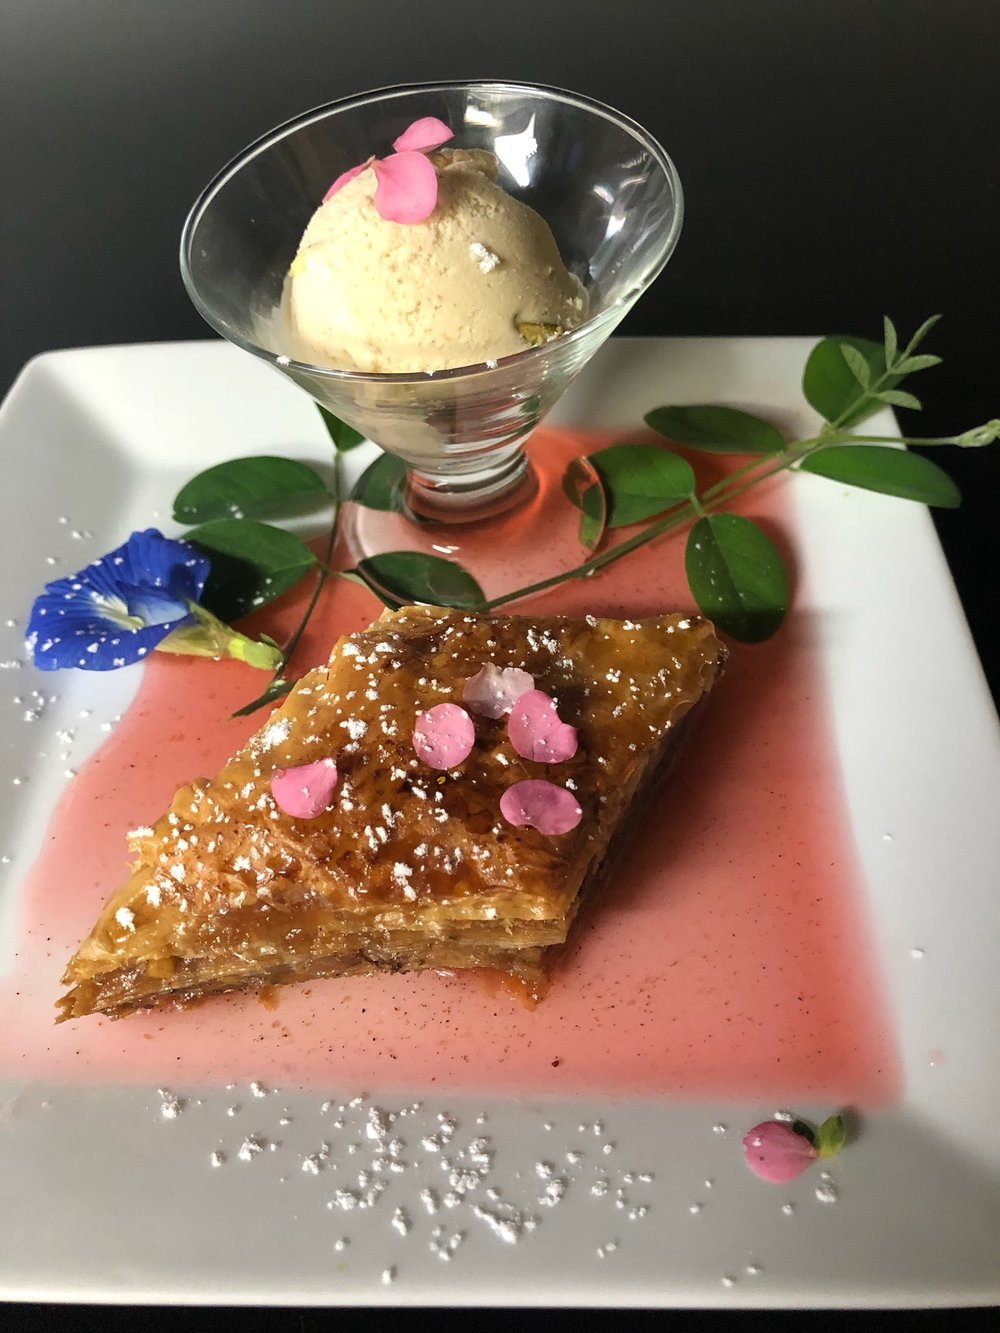 Here's a peek at dessert: Pistachio Baklava with a cardamon Rose ice cream